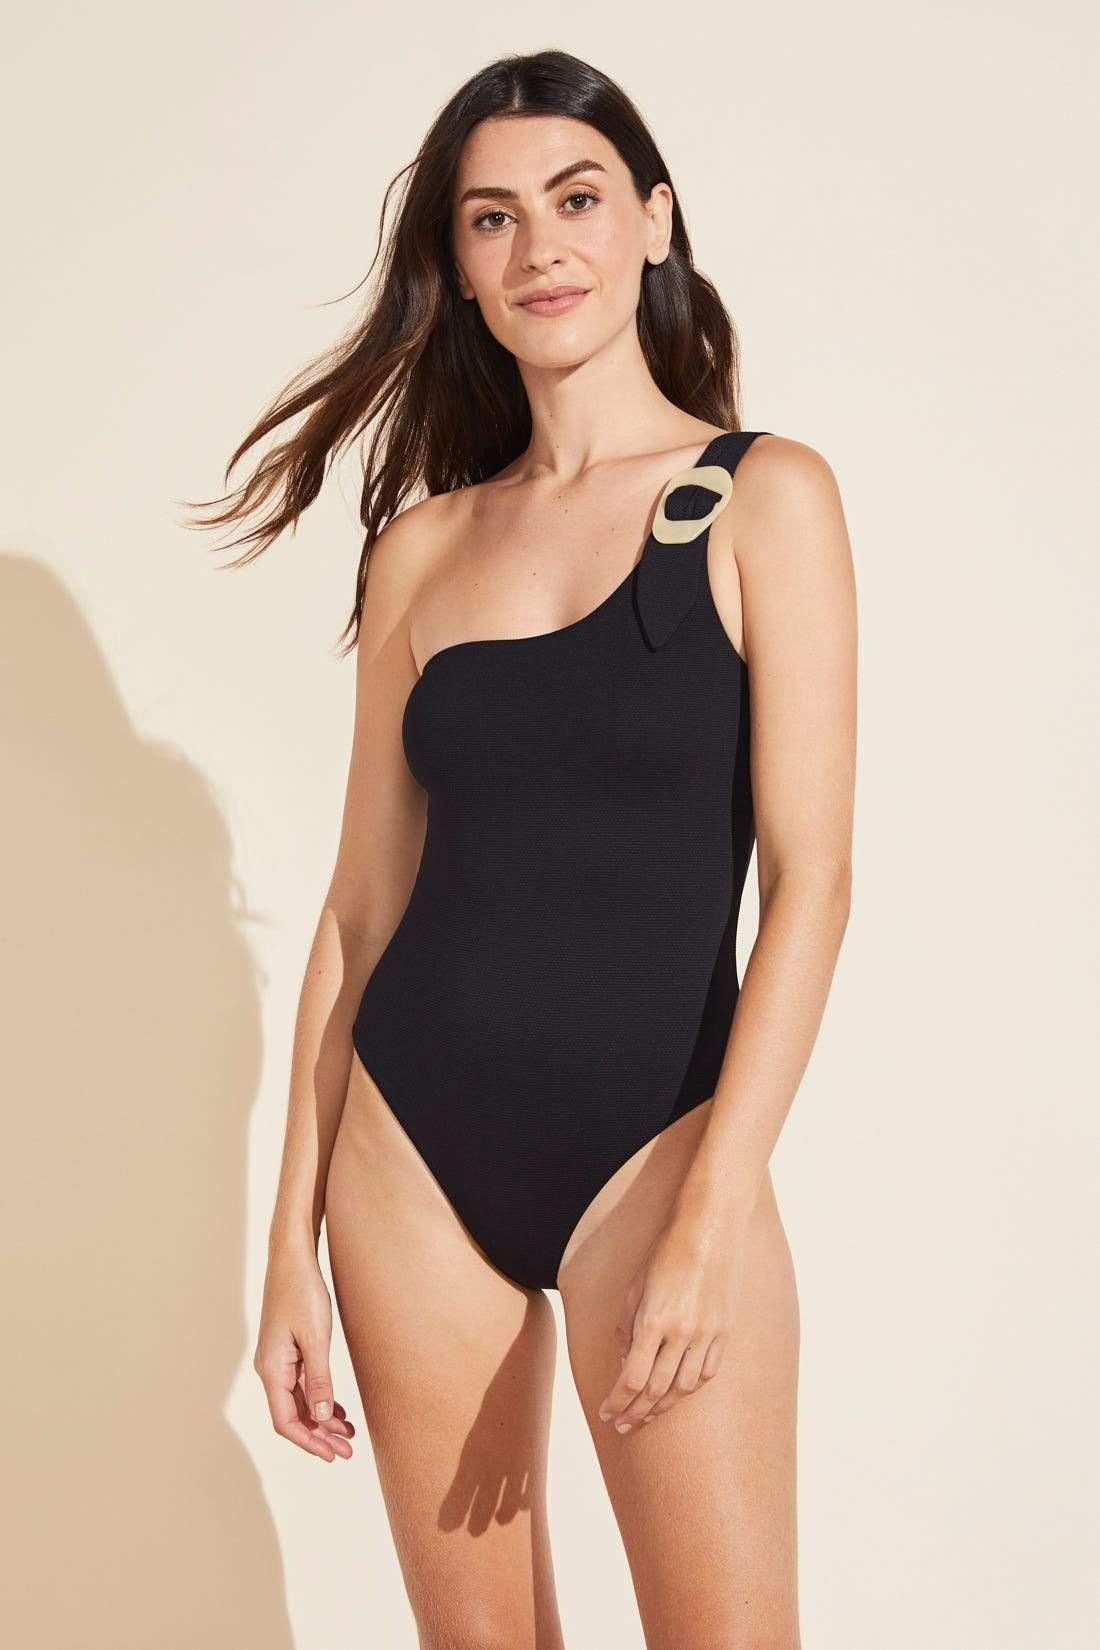 Marion Textured One-Piece with Buckle - Black